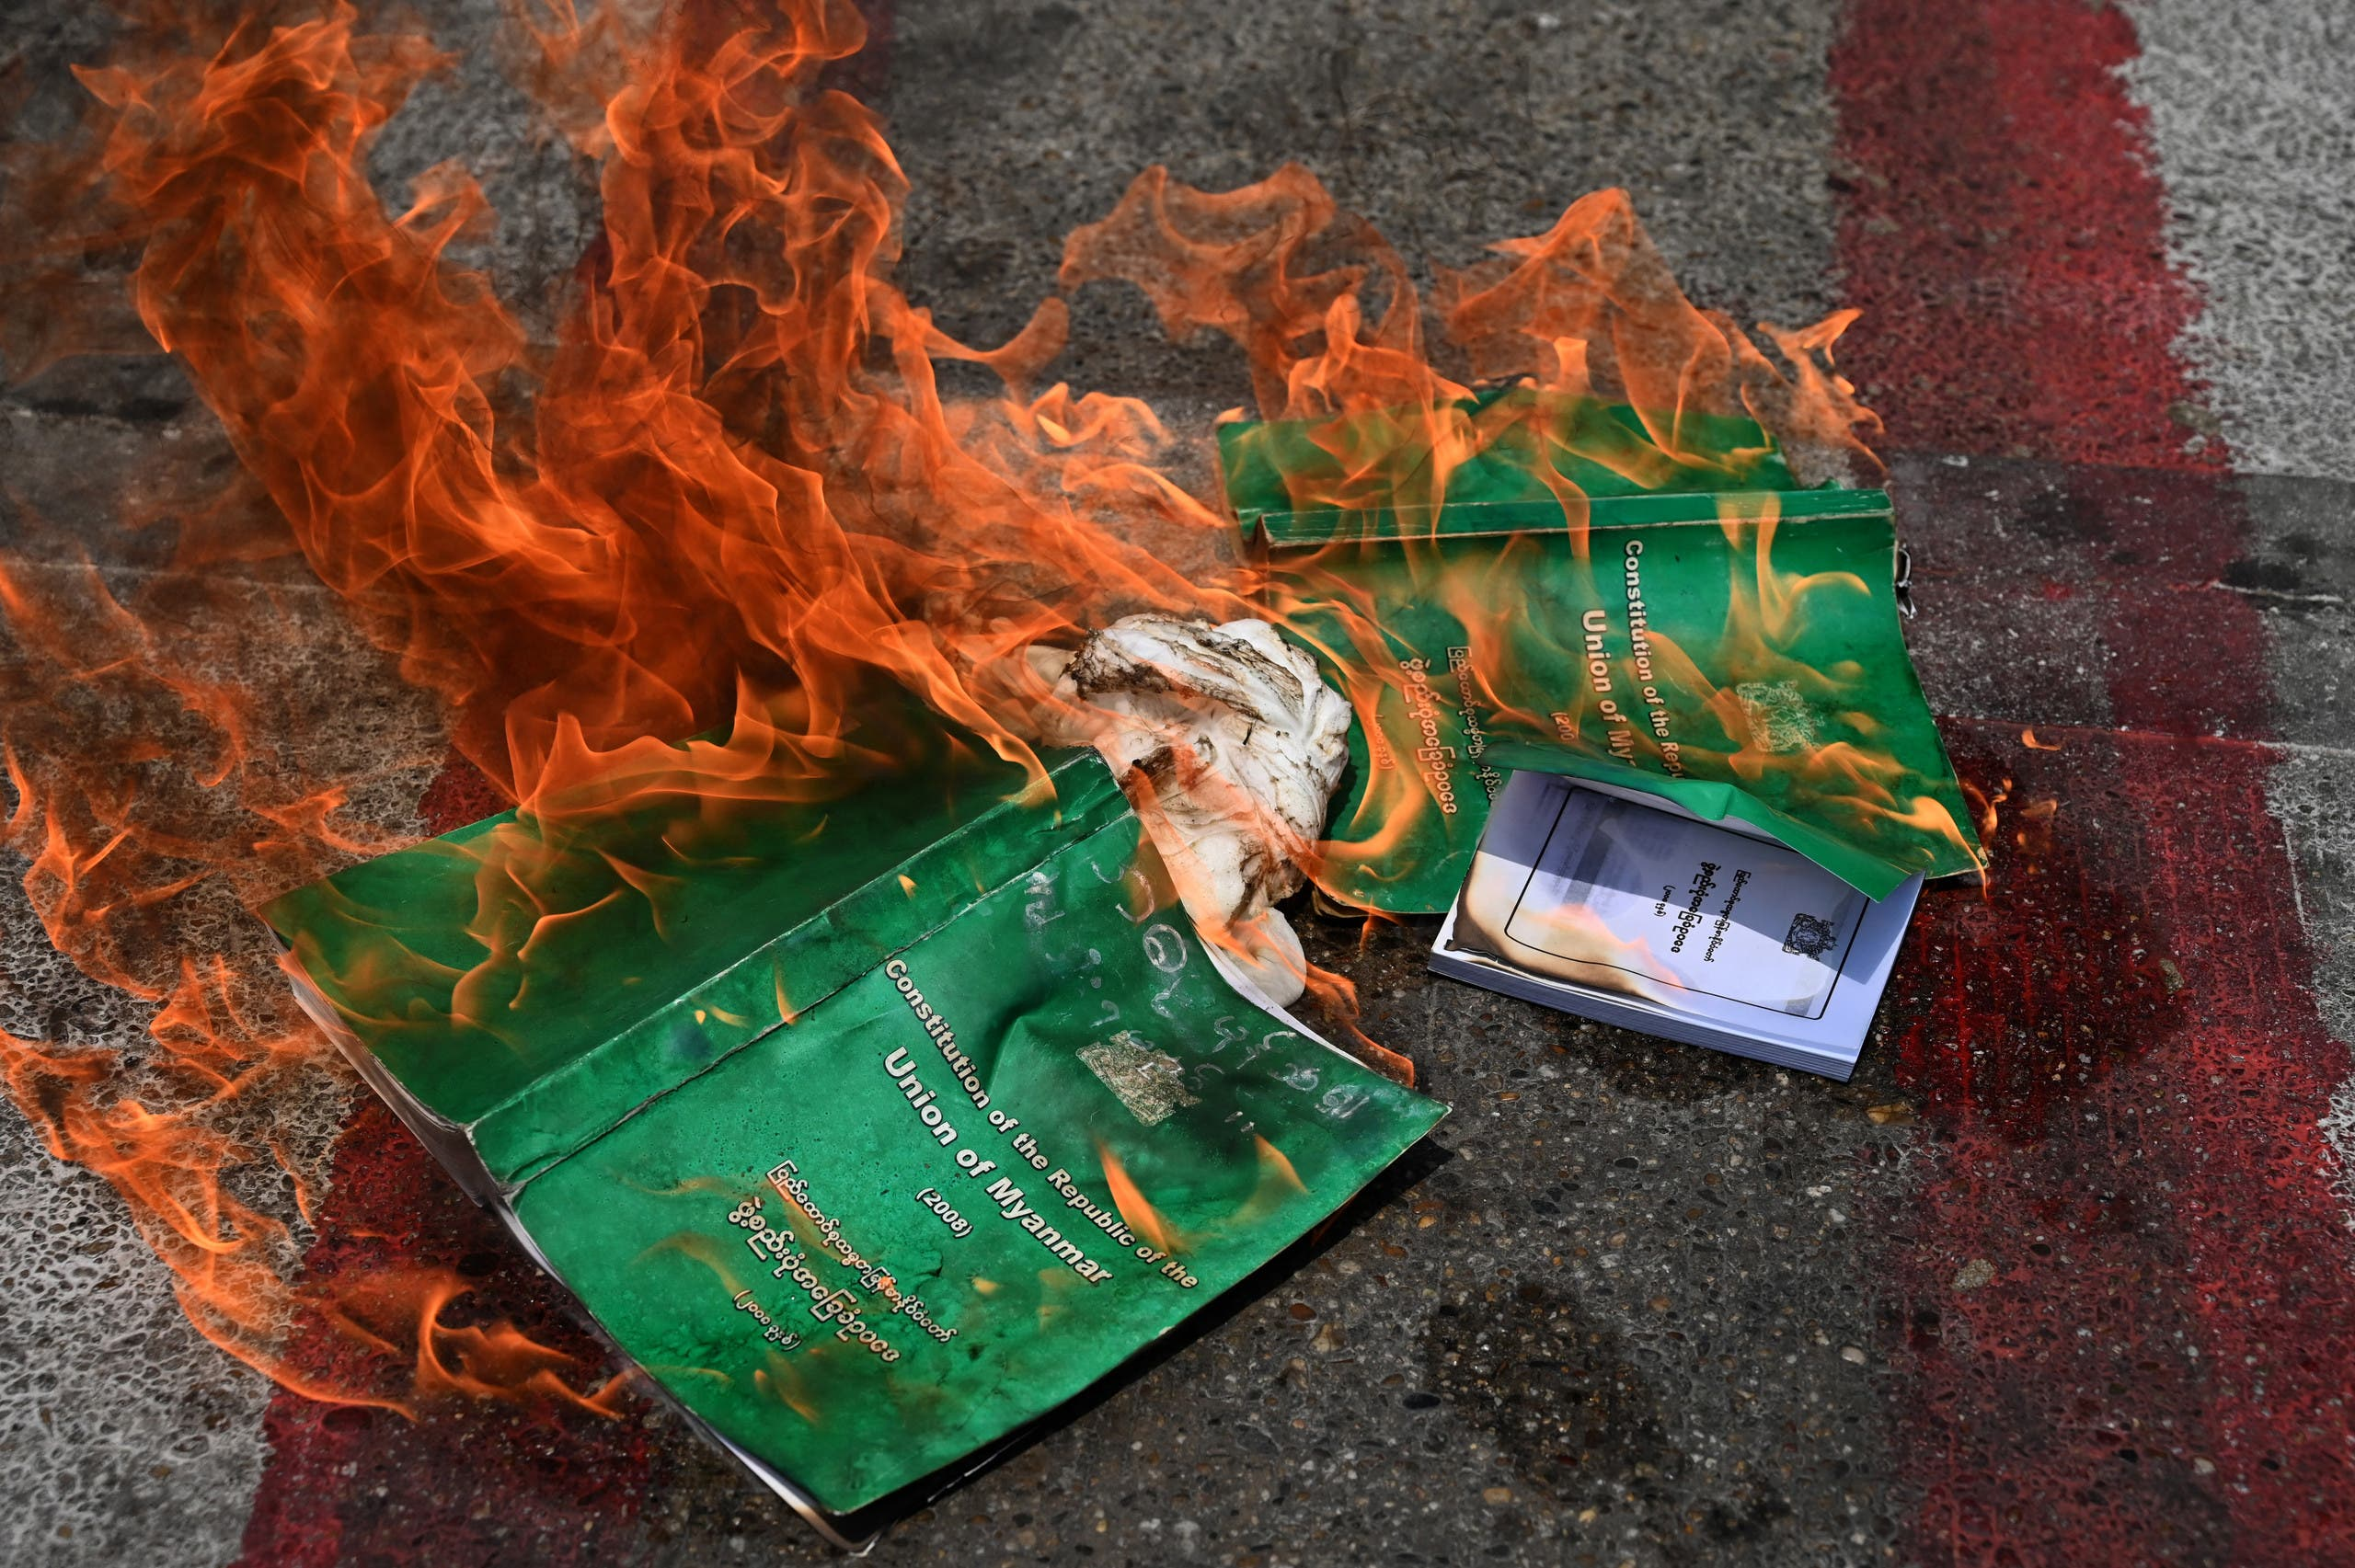 Copies of the 2008 constitution are burnt during a demonstration by protesters against the military coup in Yangon's South Okkalapa township on April 1, 2021. (File photo: AFP)